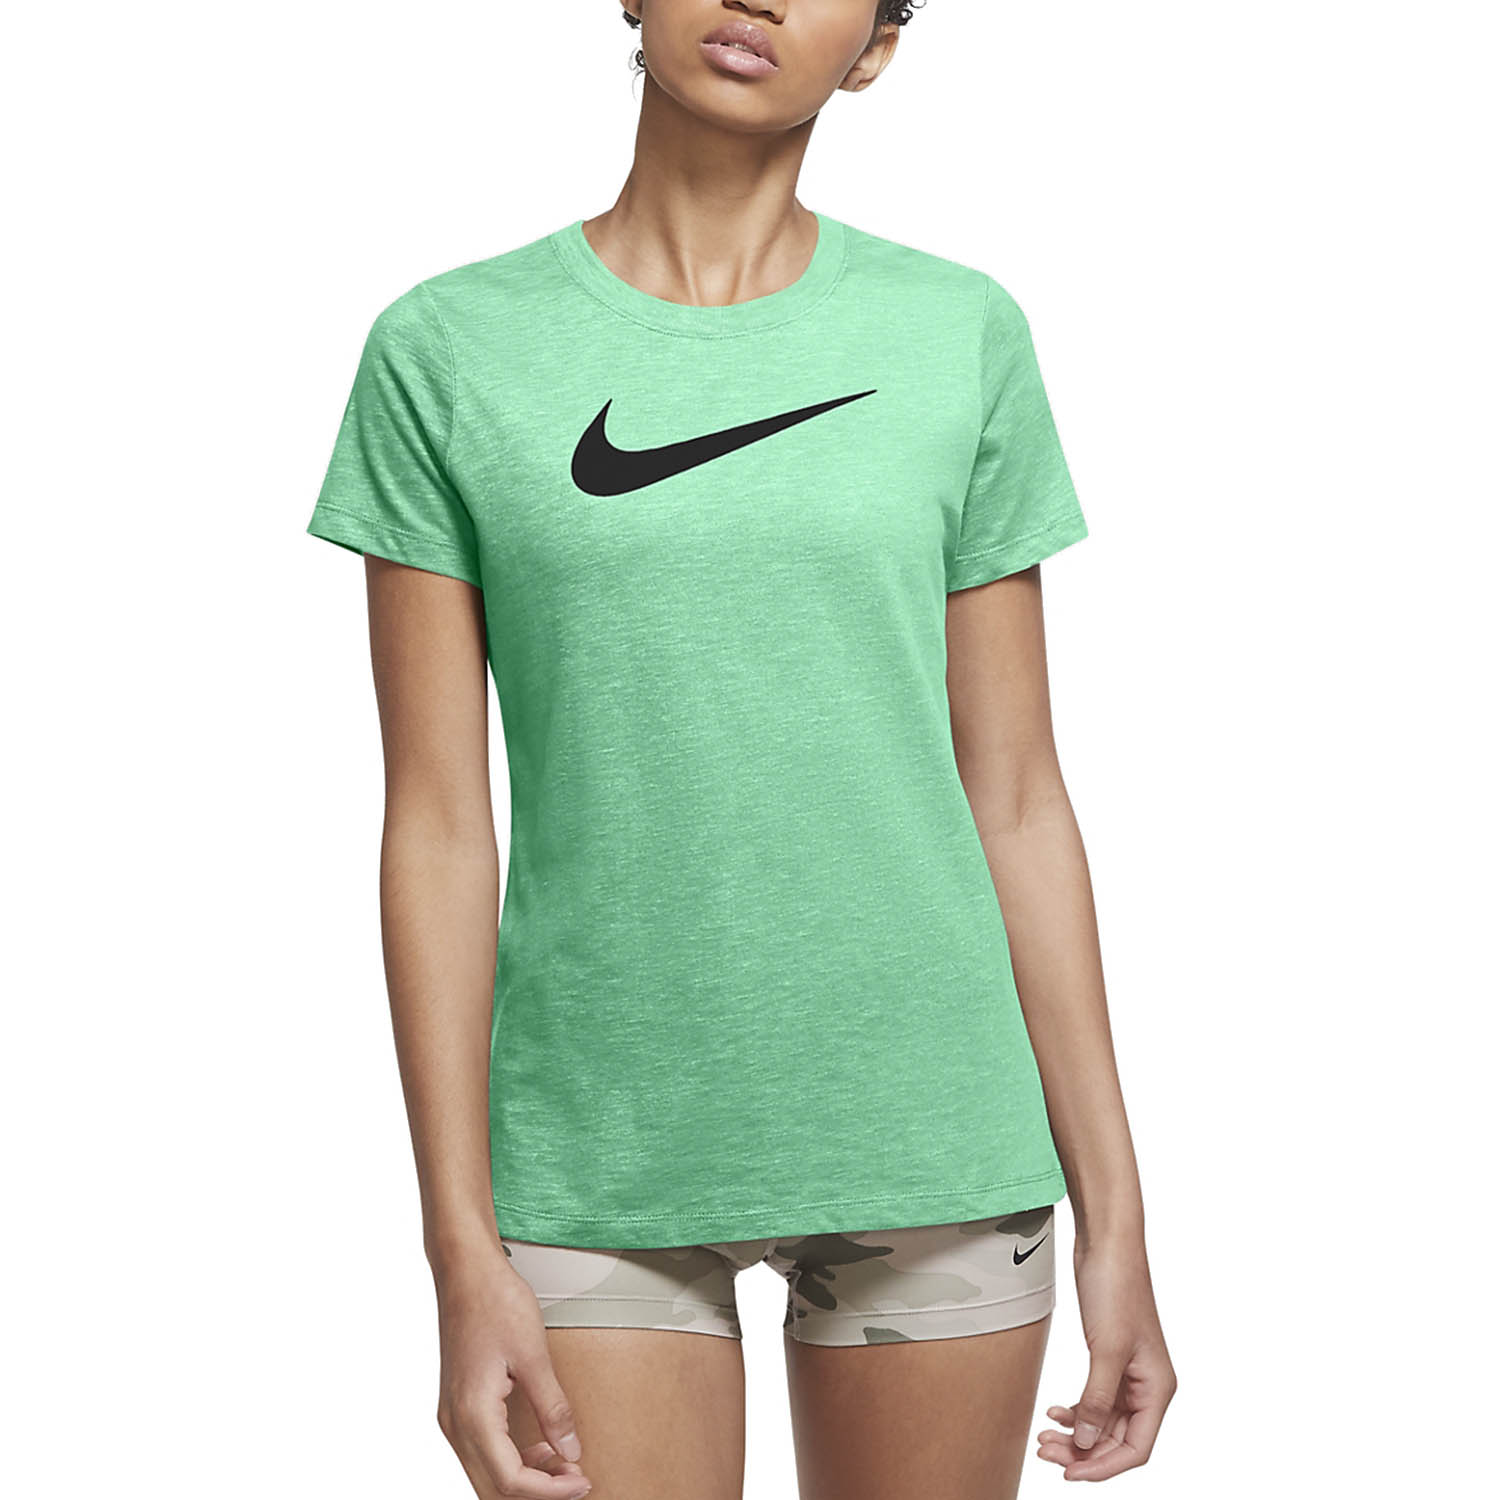 Nike Dry Crew T-Shirt - Green Glow/Barely Volt/Black